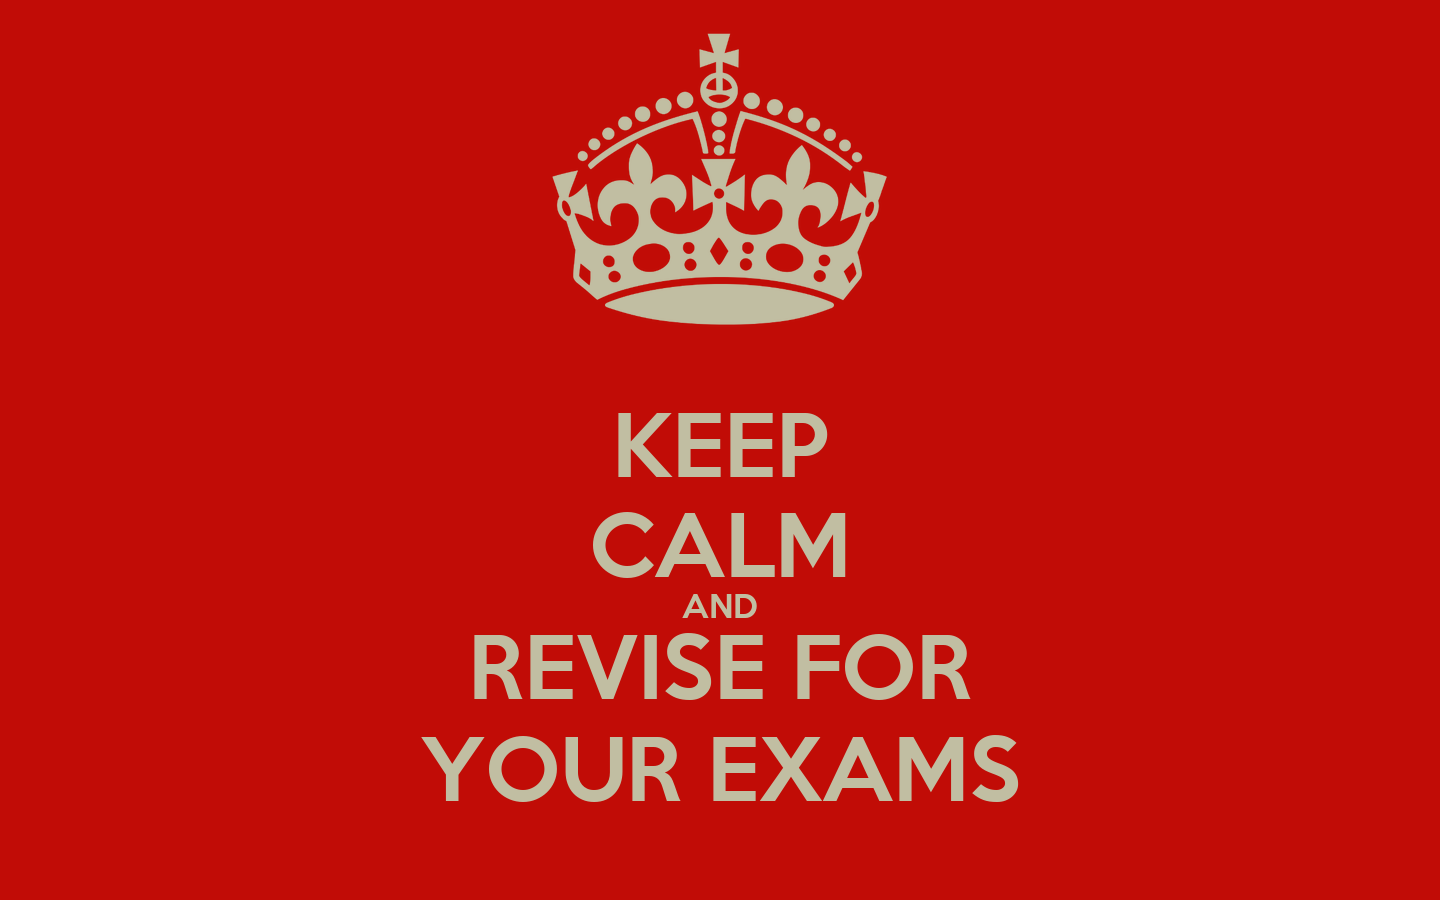 Wall Stickers Childrens Keep Calm And Revise For Your Exams Keep Calm And Carry